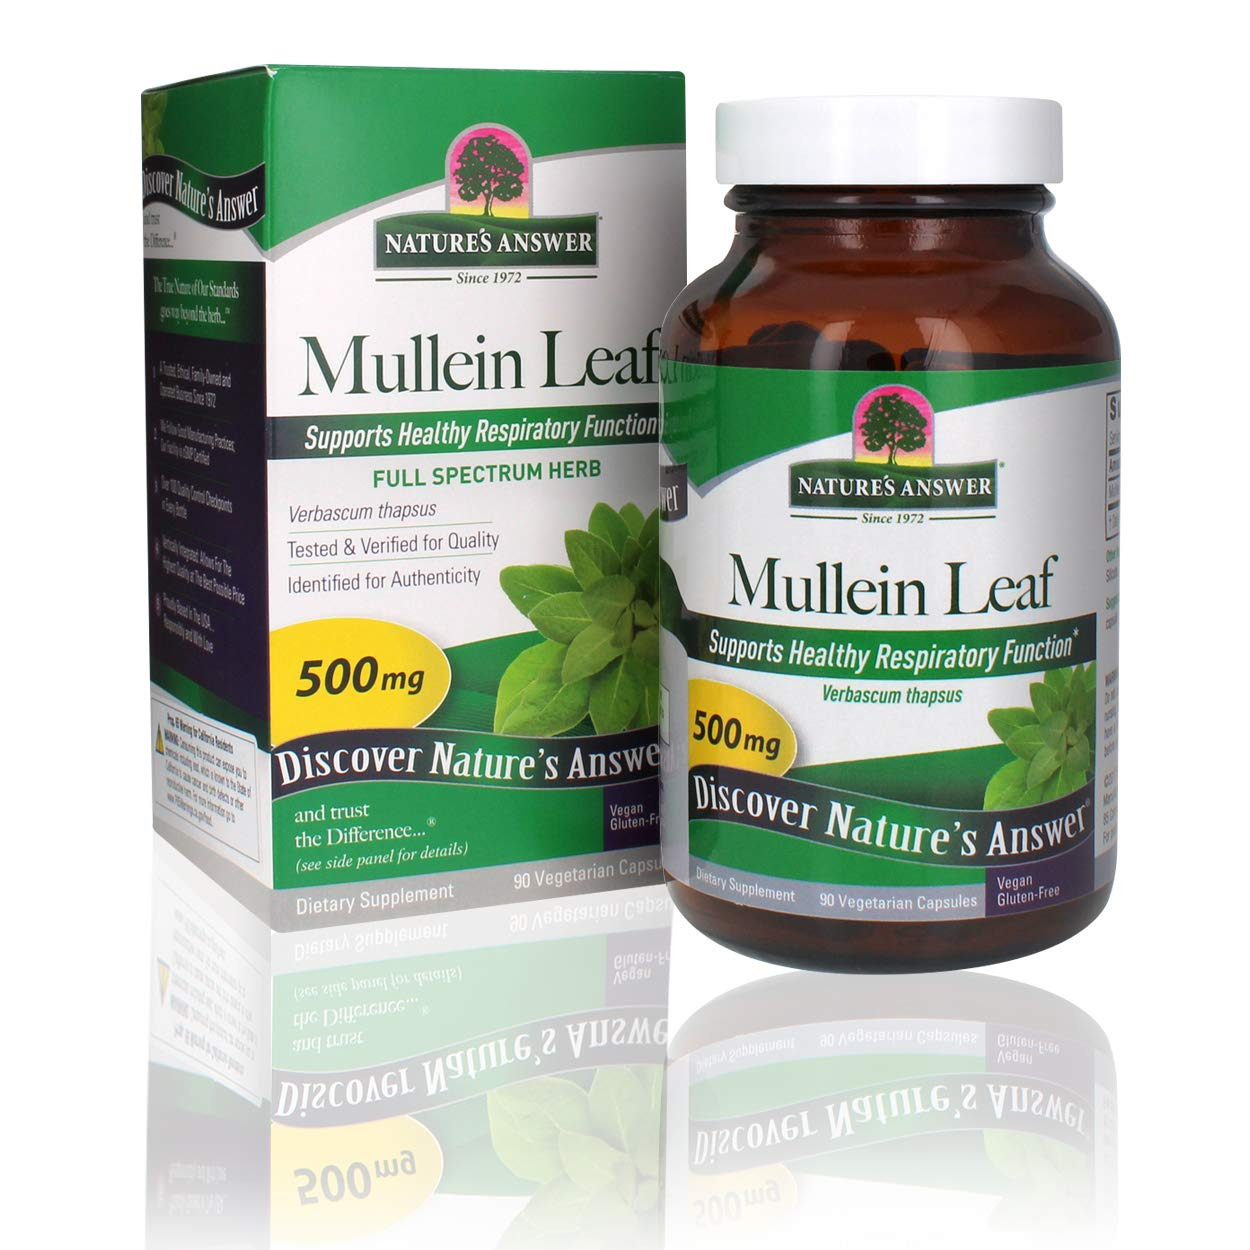 Nature's Answer Mullein Leaf Verbascum Thapsus 500mg | Herb Ideal for Immune and Inflammation | Full Spectrum Herb | Supports Healthy Respiratory Function | Gluten-Free, Vegetarian/Vegan 90 Capsules